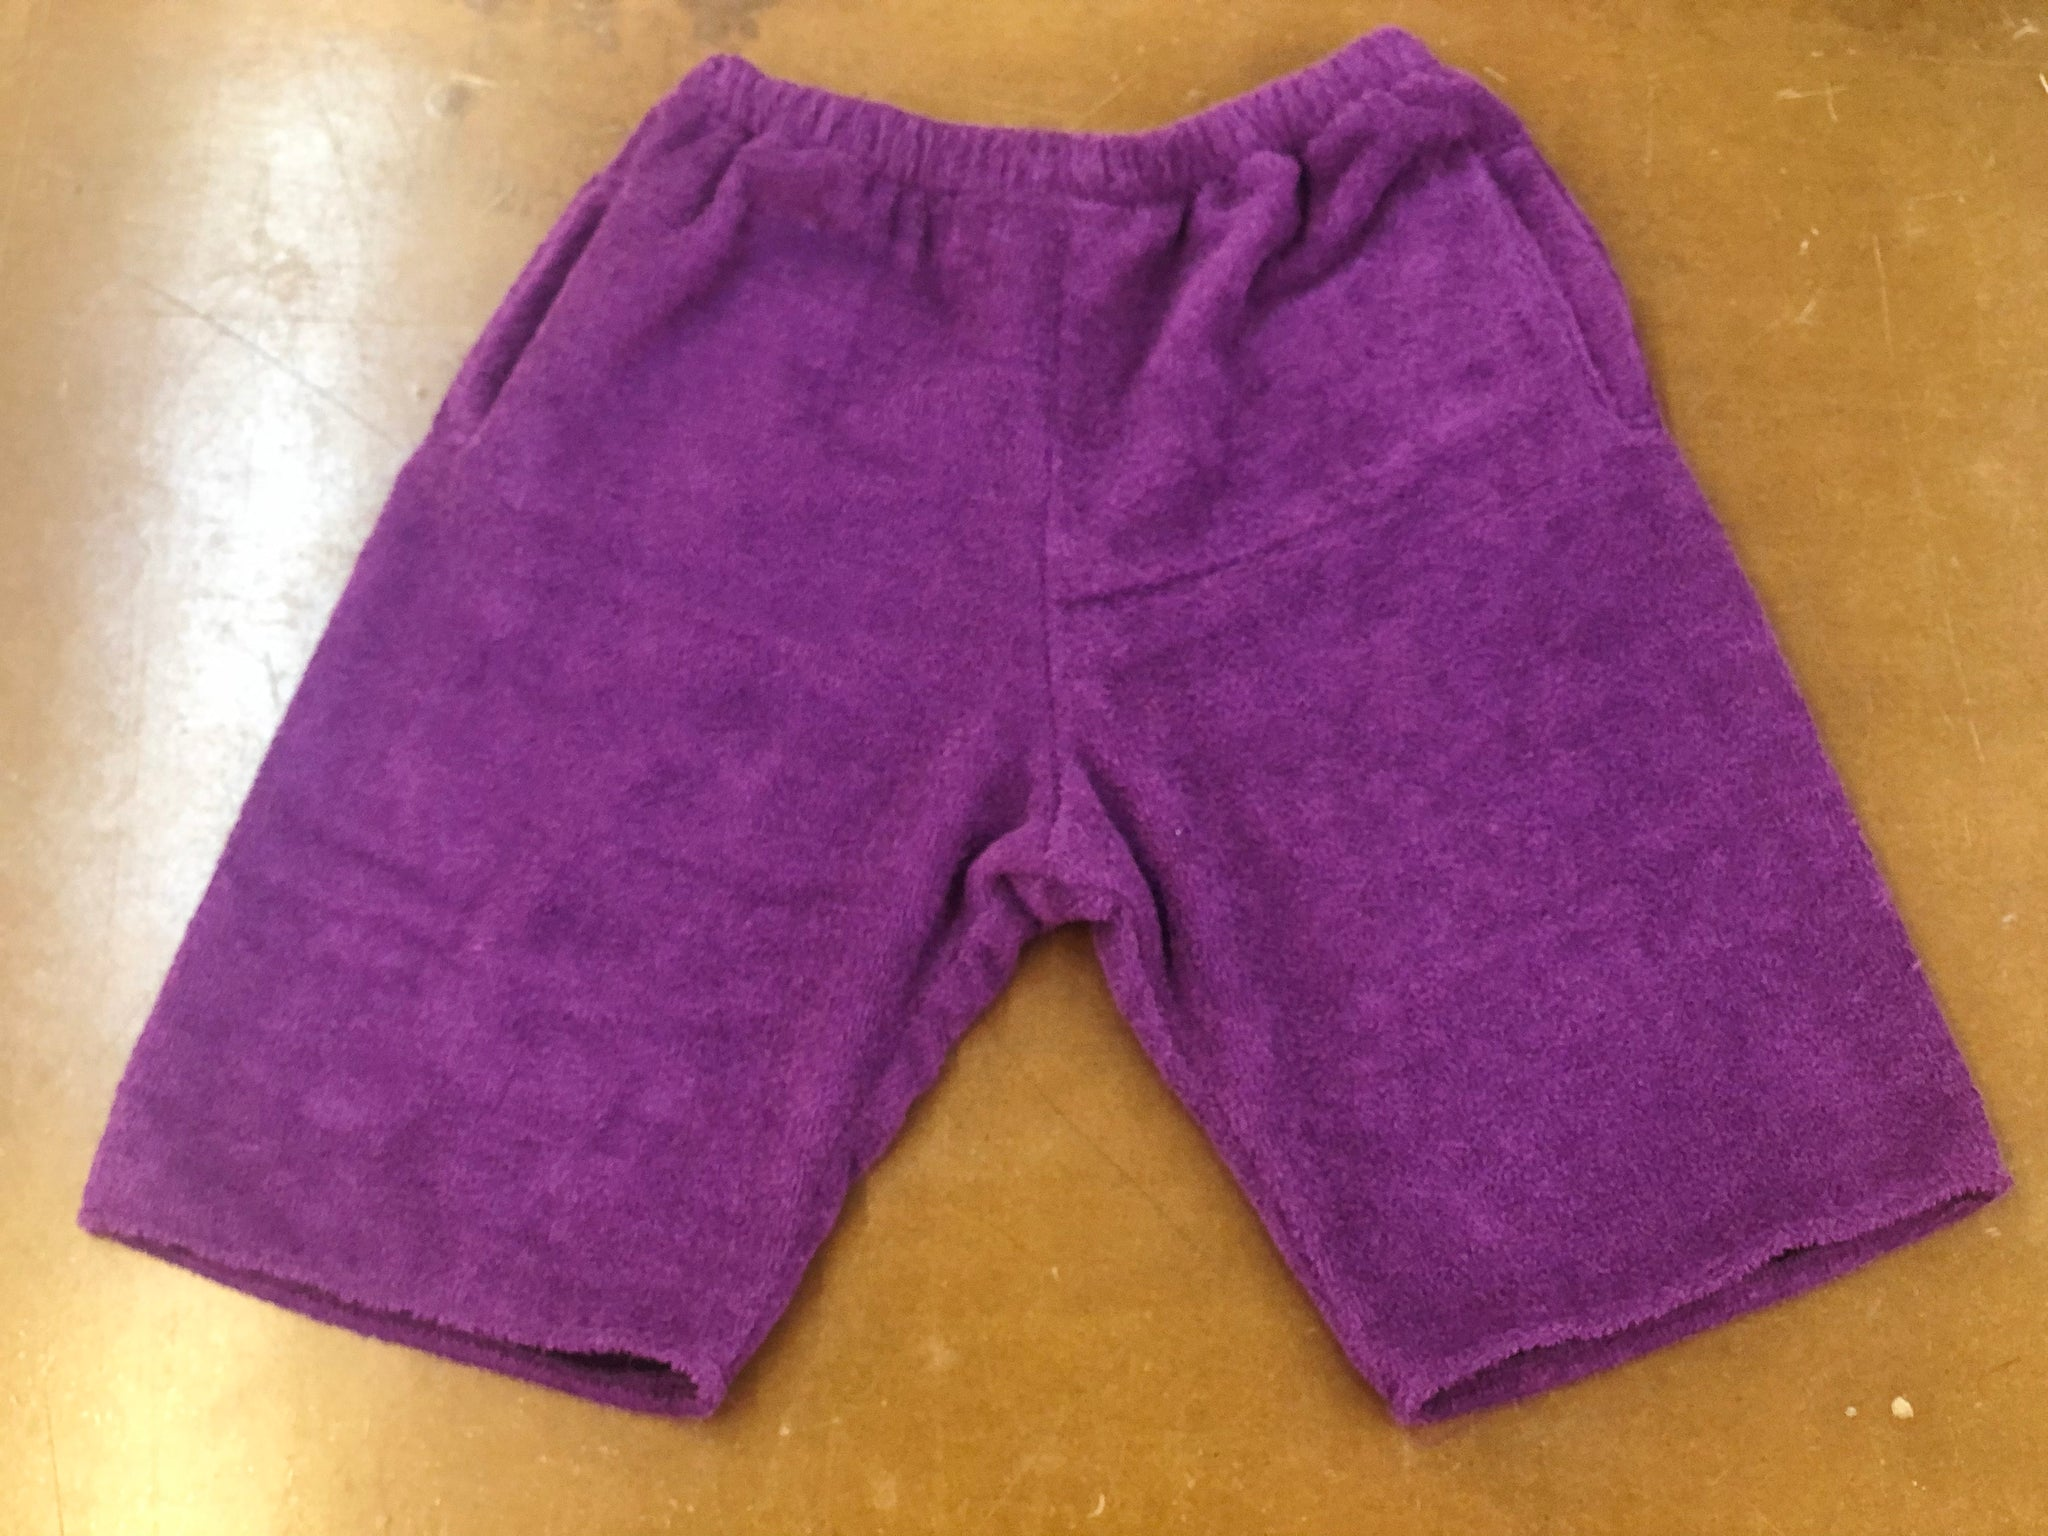 TERRY SHORTS PURPLE